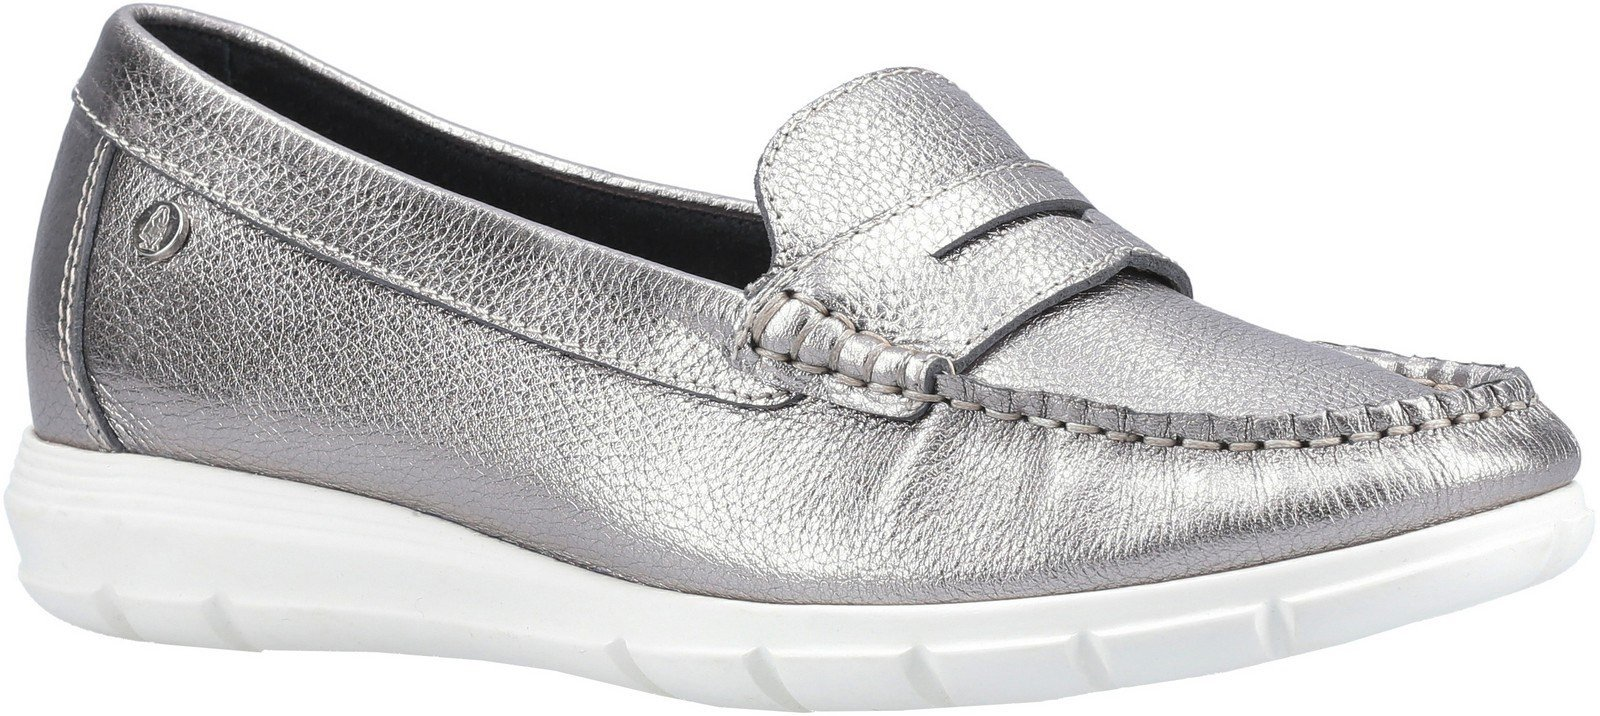 Hush Puppies Women's Paige Slip On Loafer Various Colours 30242 - Silver 3